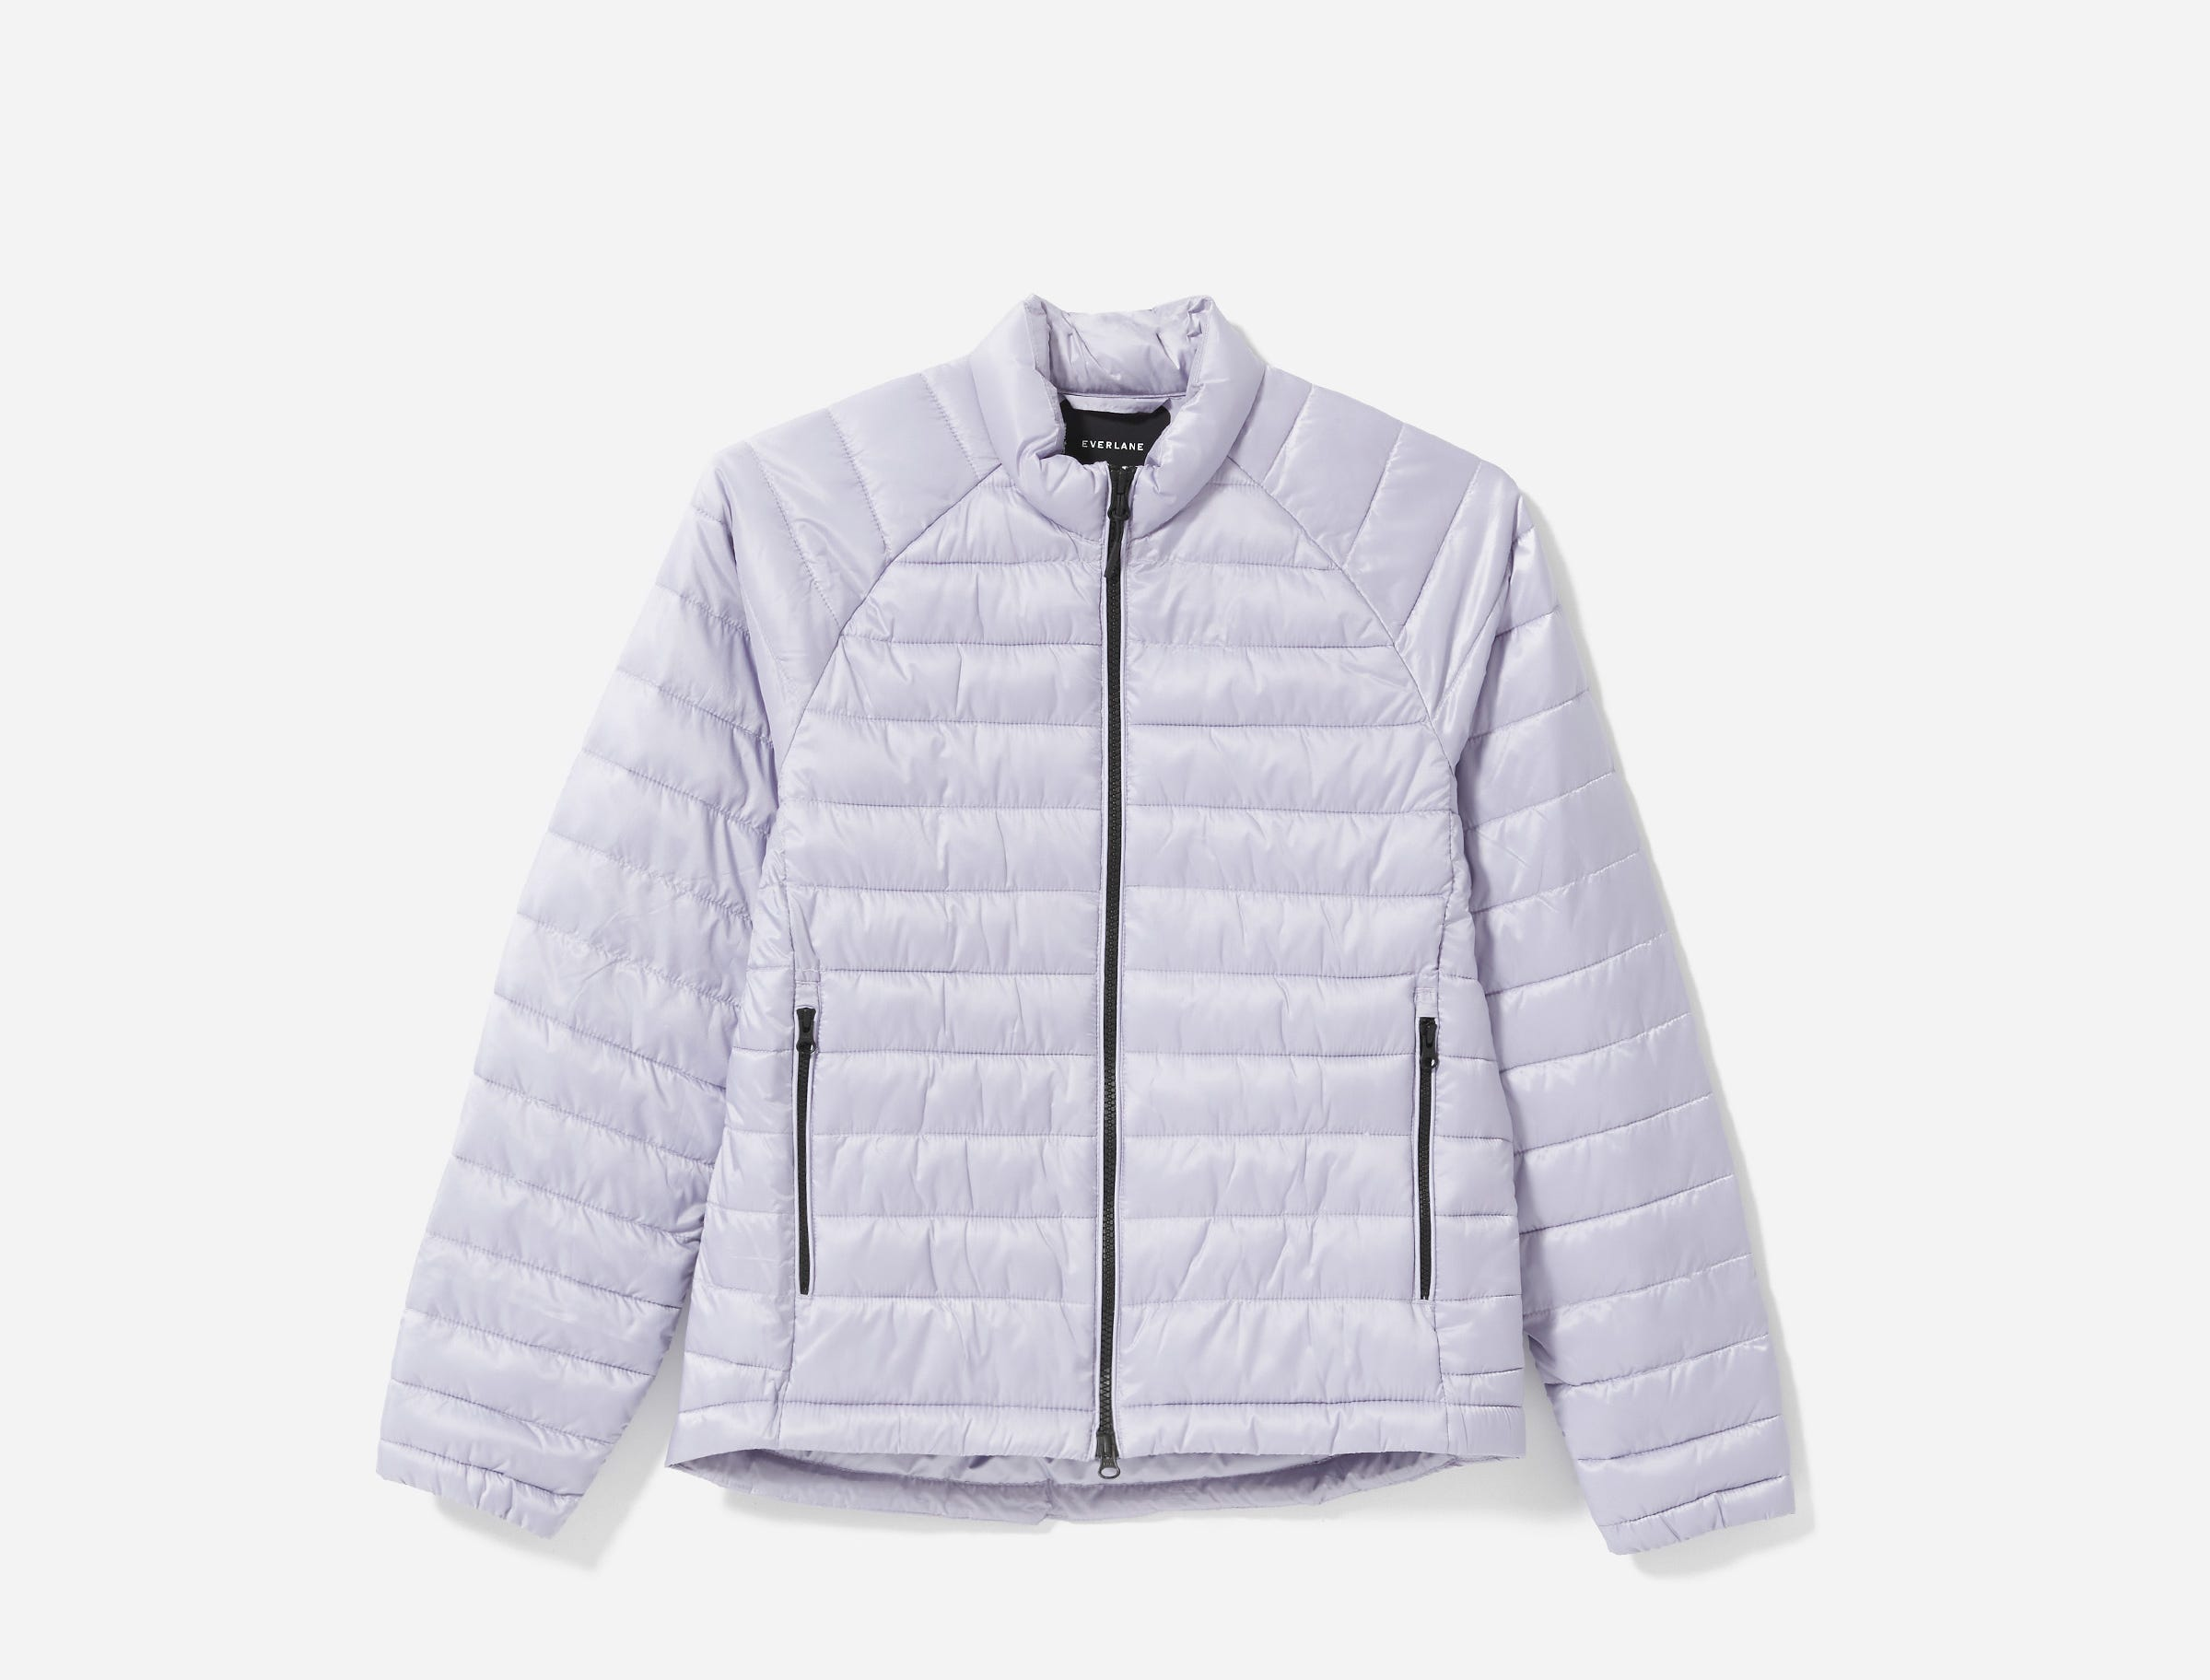 Everlane says 99% of every ReNew product is made from recycled plastic. Only the zippers and trim are not. Here, the line's Light Weight Puffer in lavender, which Everlane says is made with 15 recycled plastic bottles.